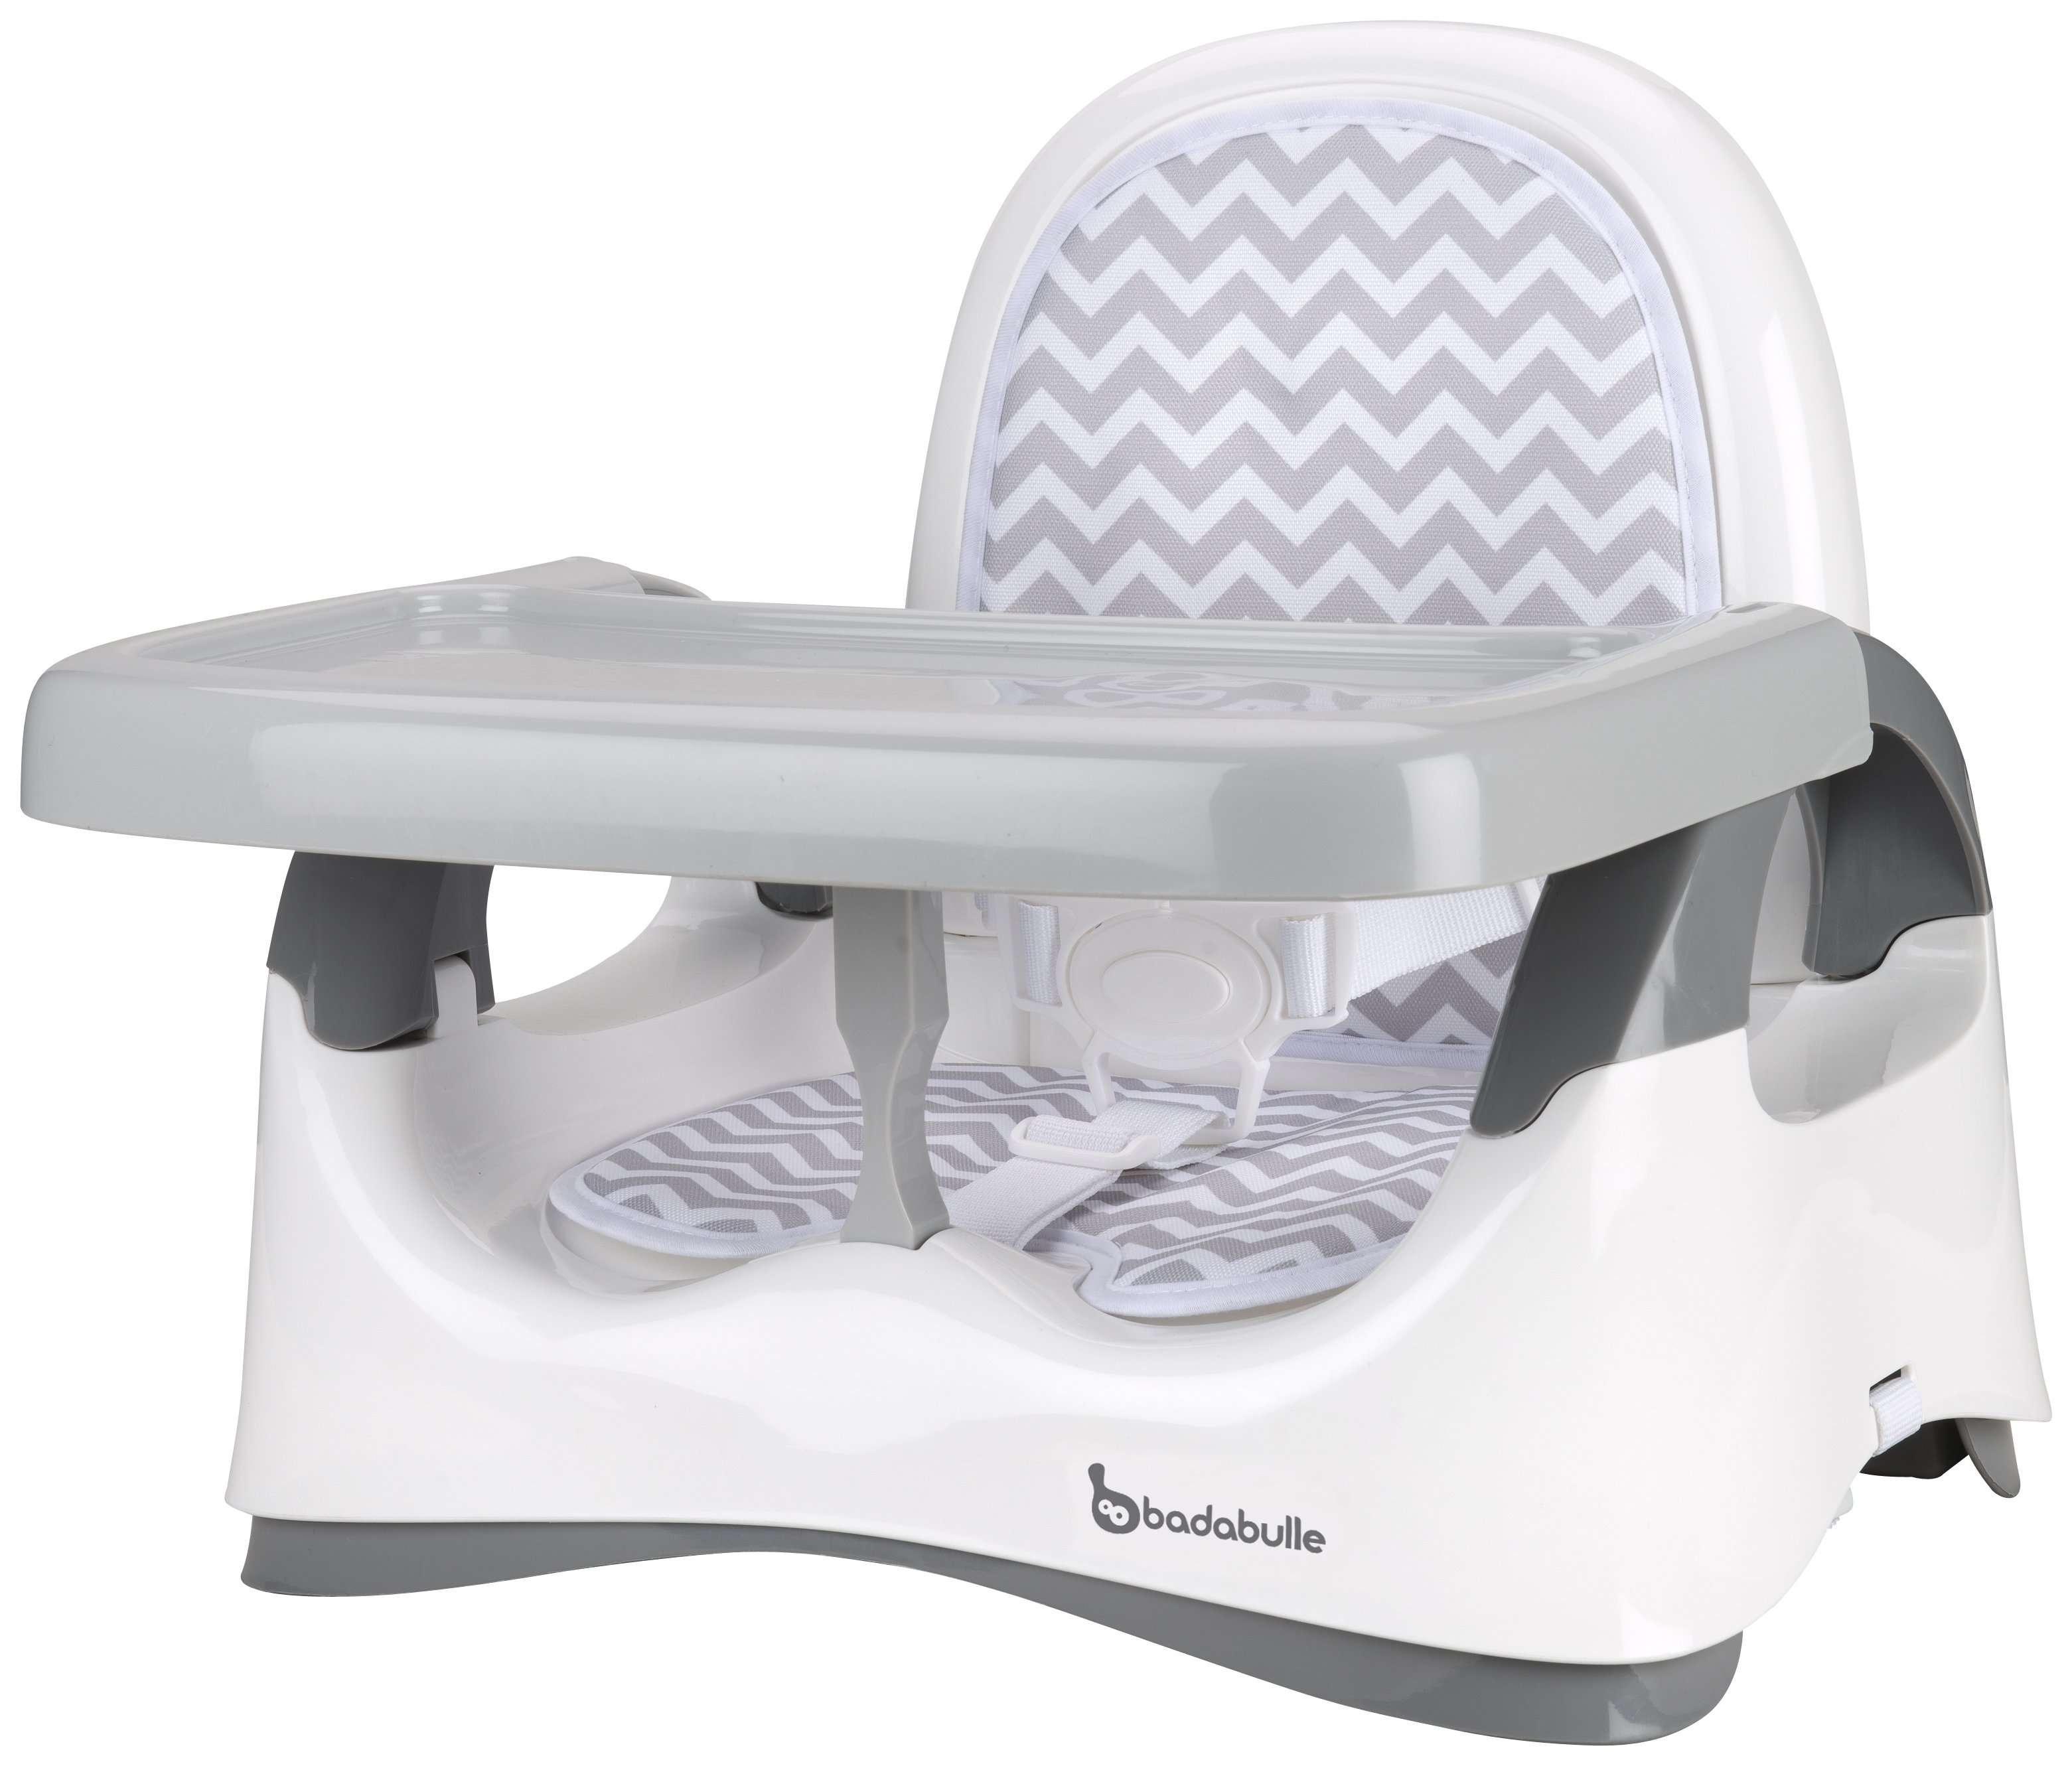 Image of Badabulle Comfort Booster Seat - White/Grey